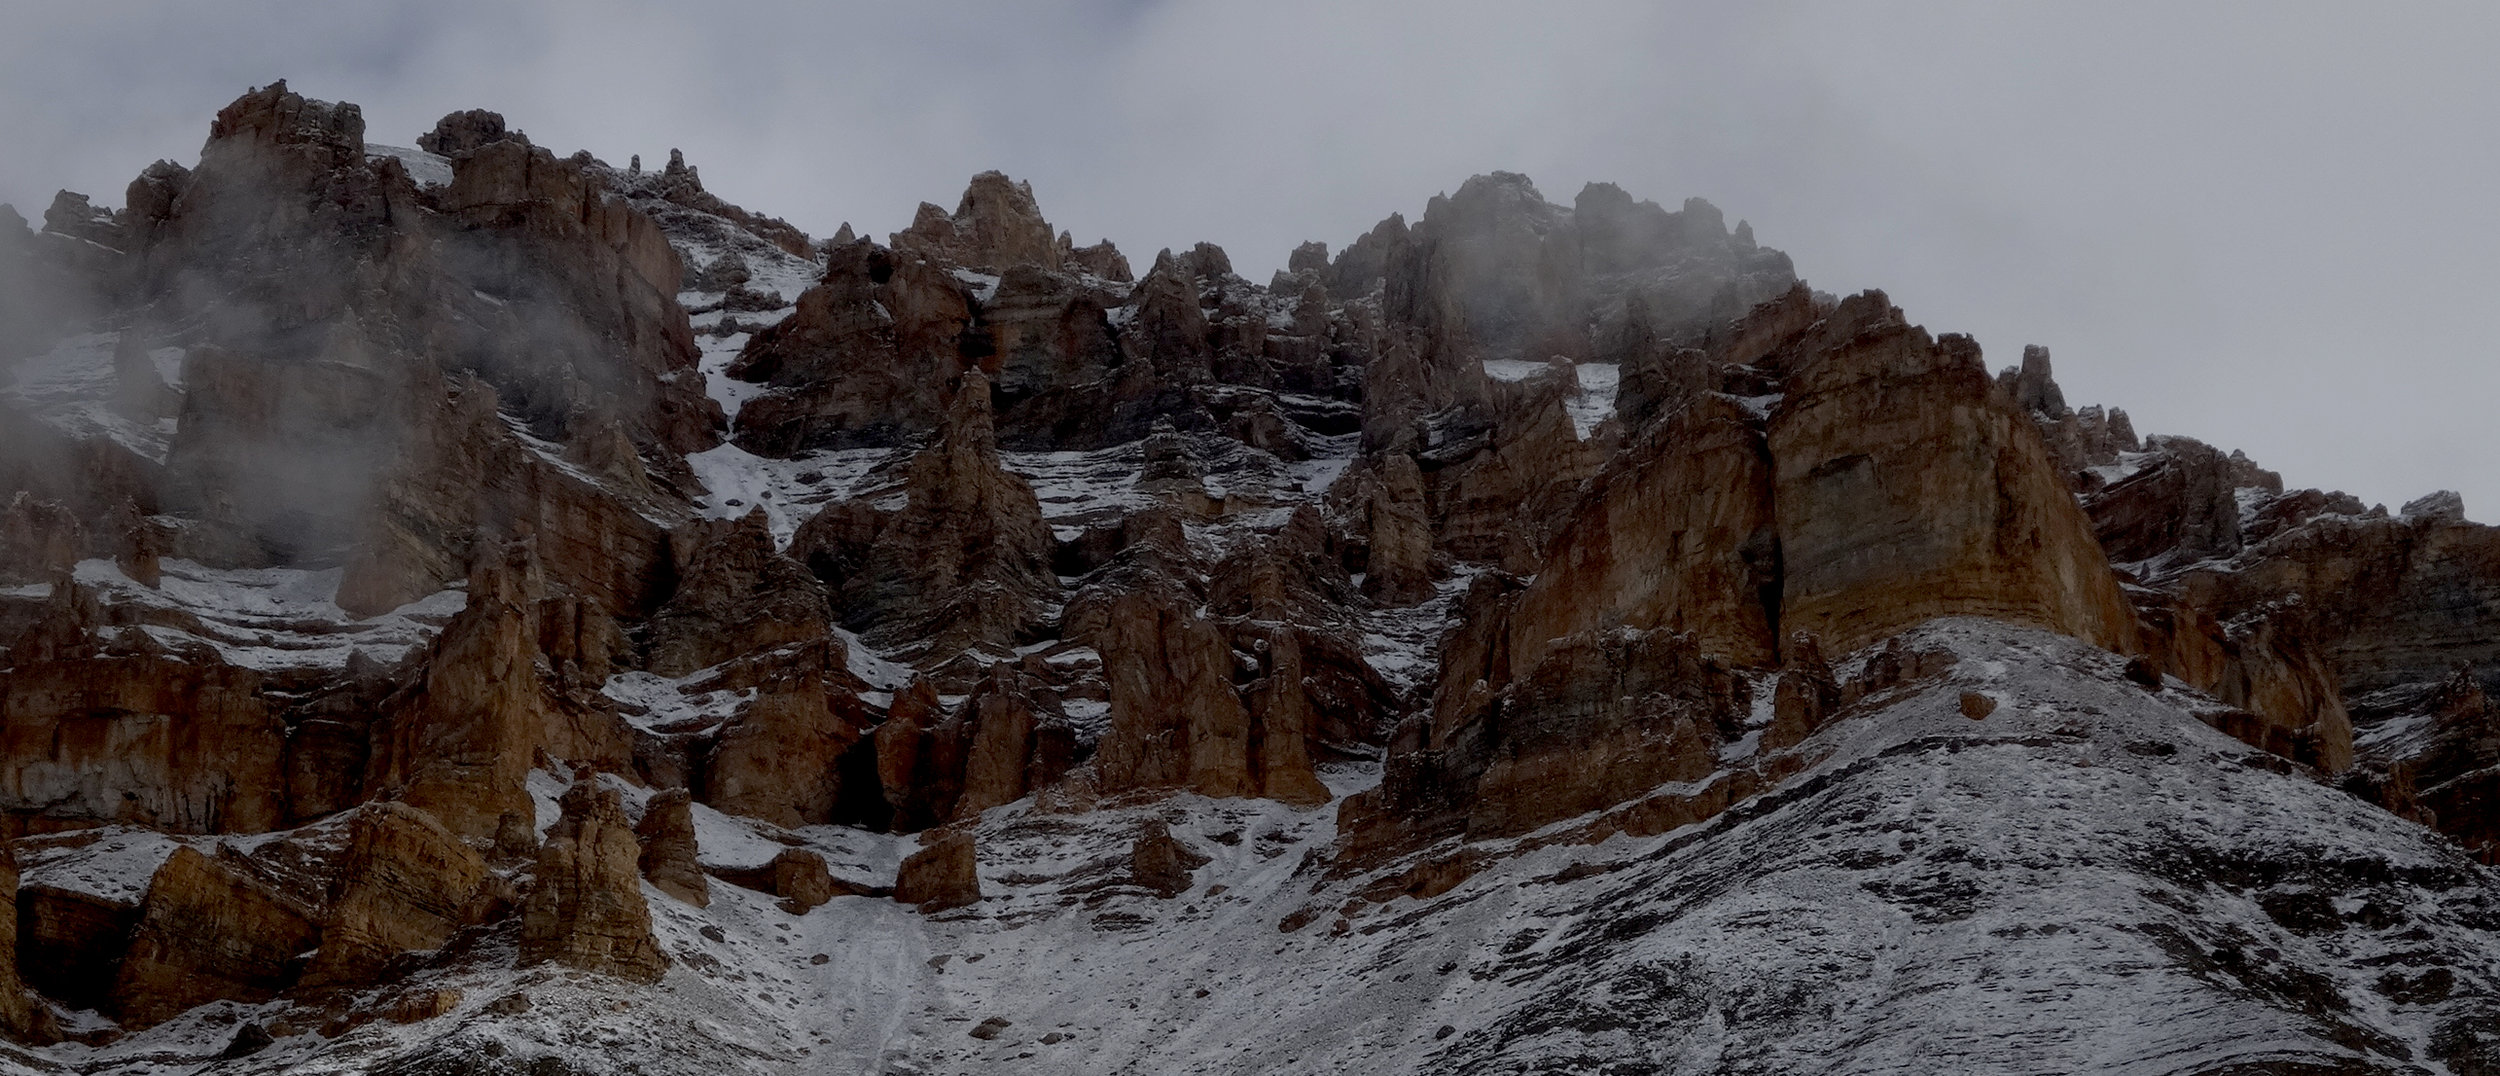 A crenellated canyon wall towers 2000m above us. Crossing the inner/outer divide to social solution spaces could be harder than climbing out through this.